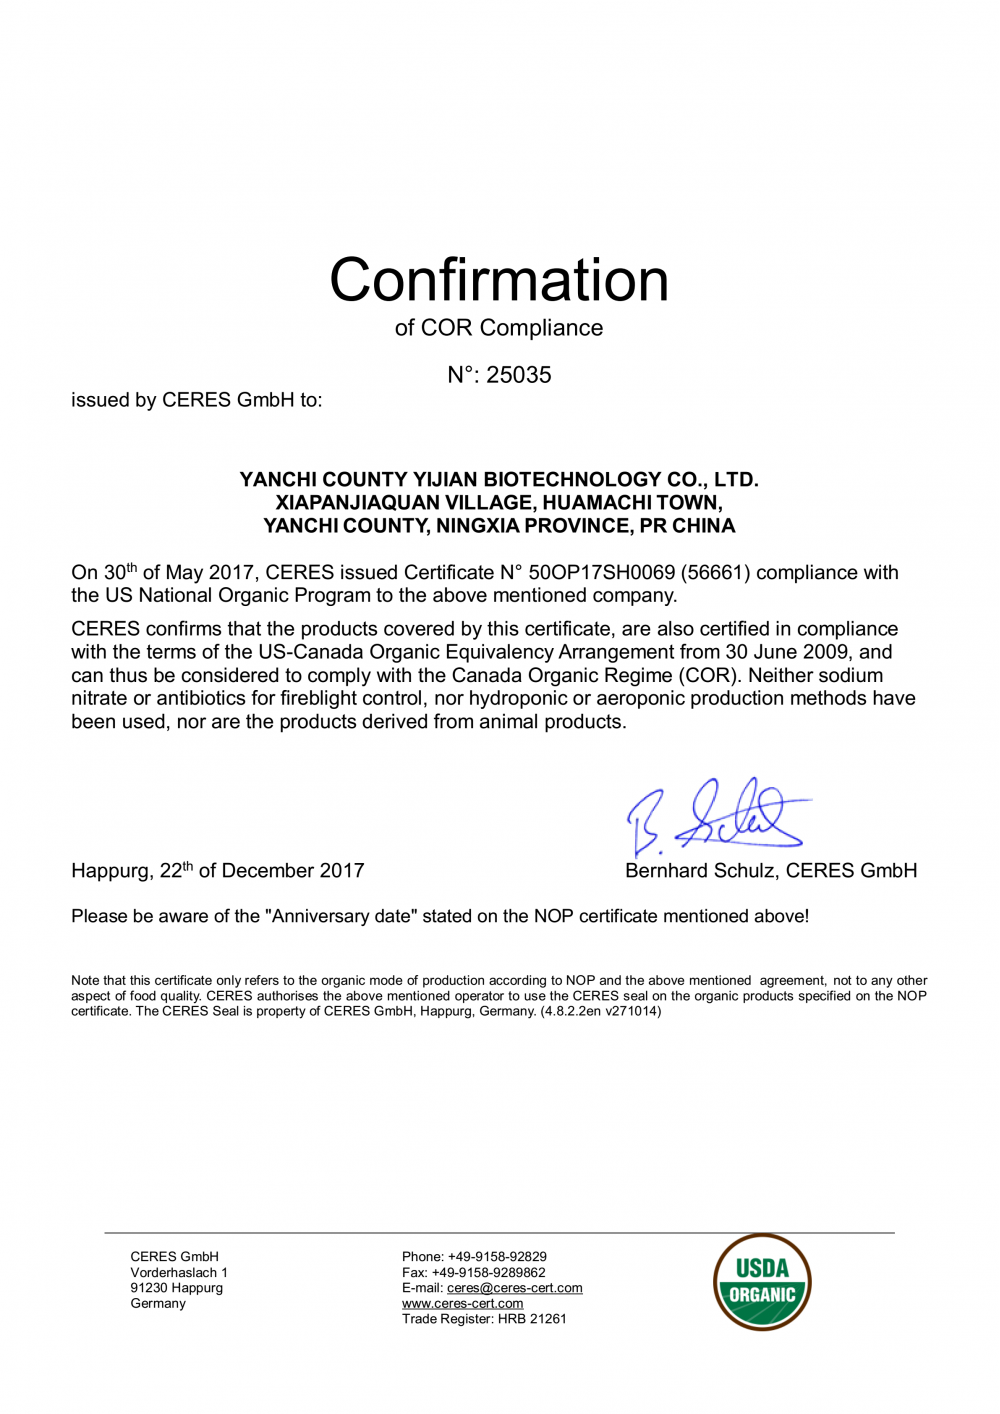 Confirmation of COF ( Canada Organic Regime ) Compliance